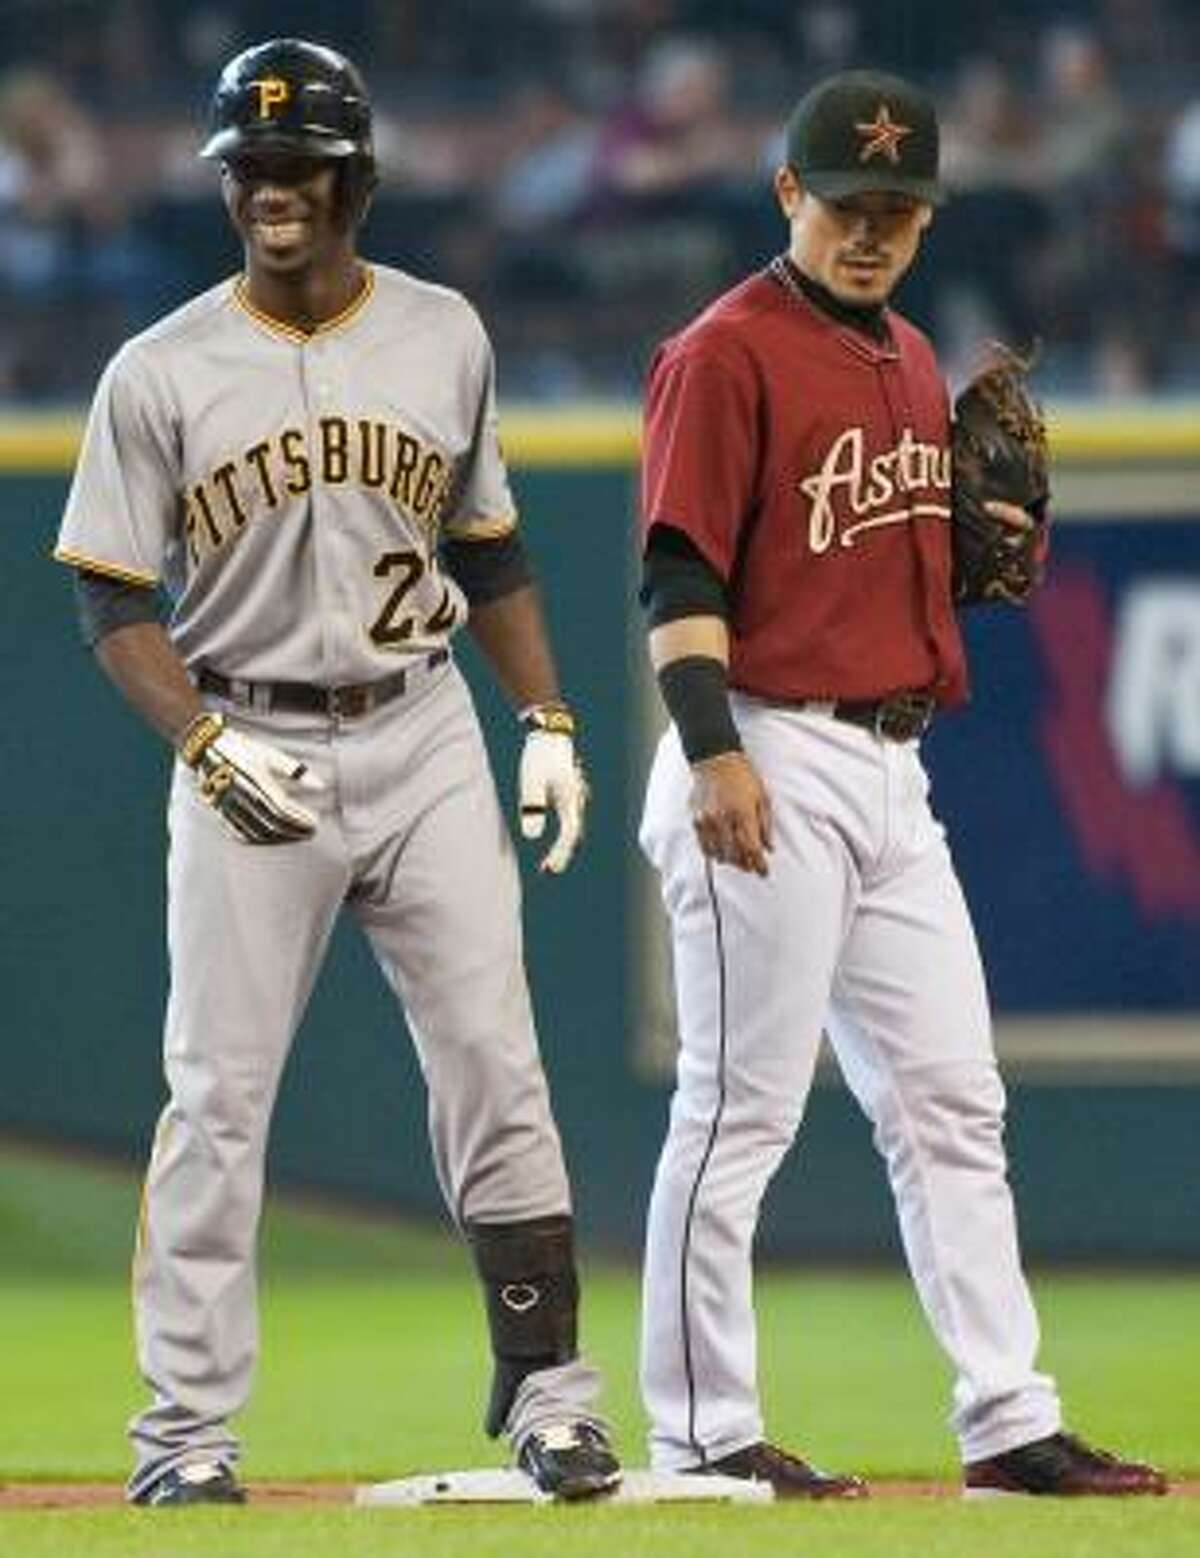 Game 3: Pirates 2, Astros 1 Pittsburgh Pirates' Andrew McCutchen, left, smiles after hitting a lead-off double during the first inning.